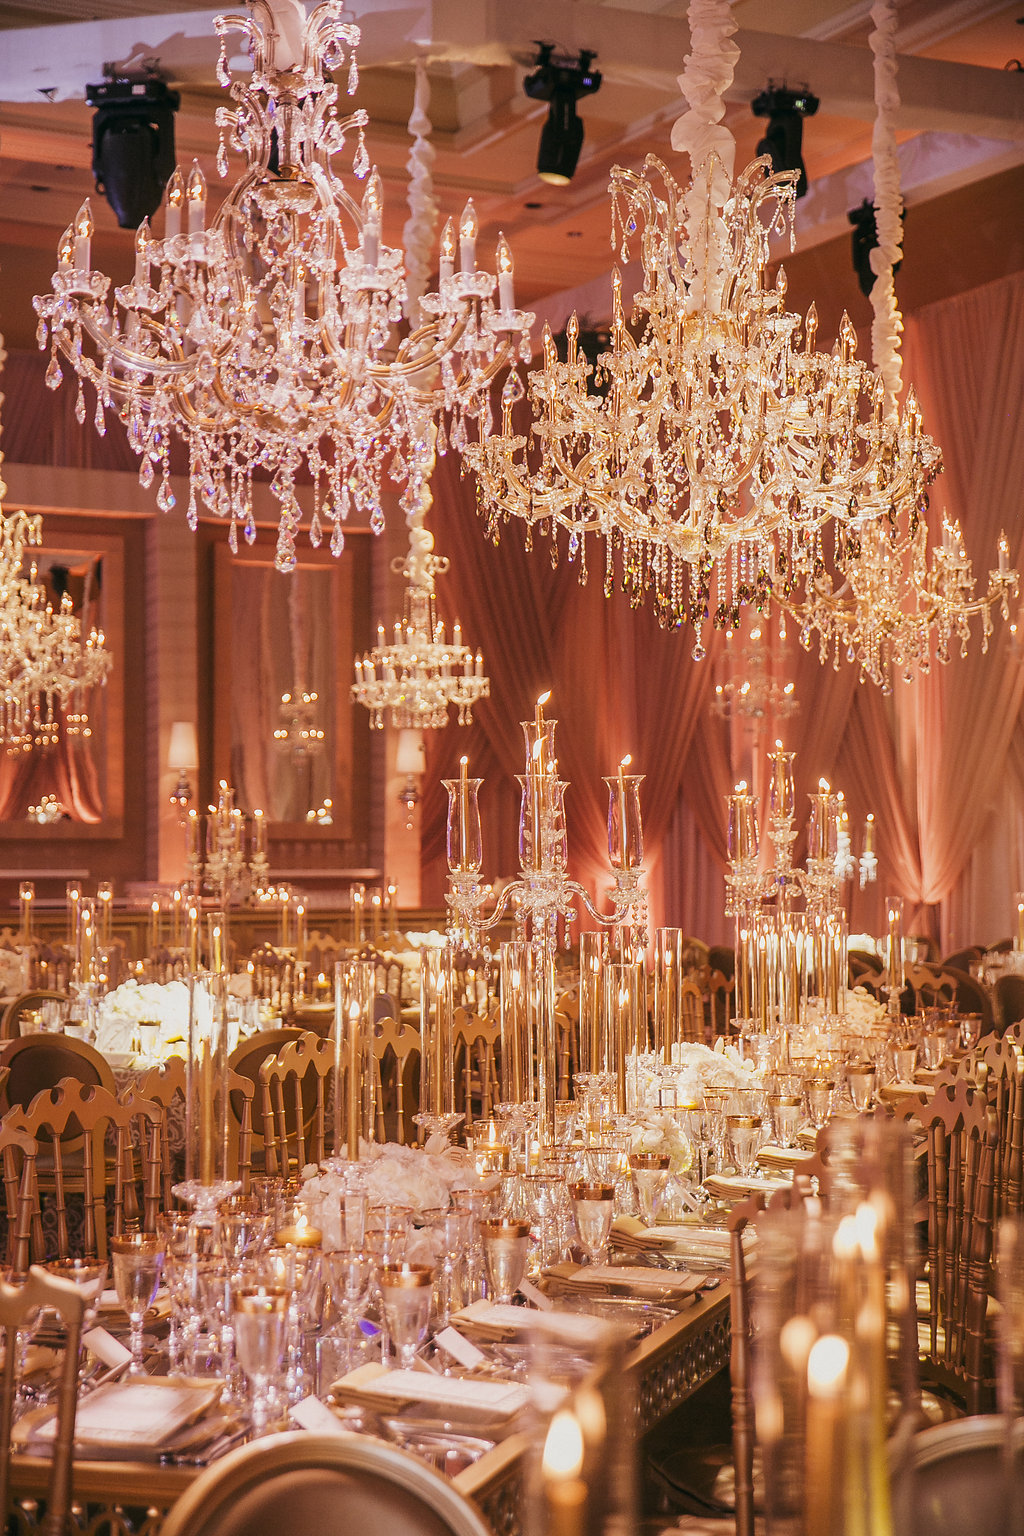 Several large chandeliers suspended over tables in a ballroom